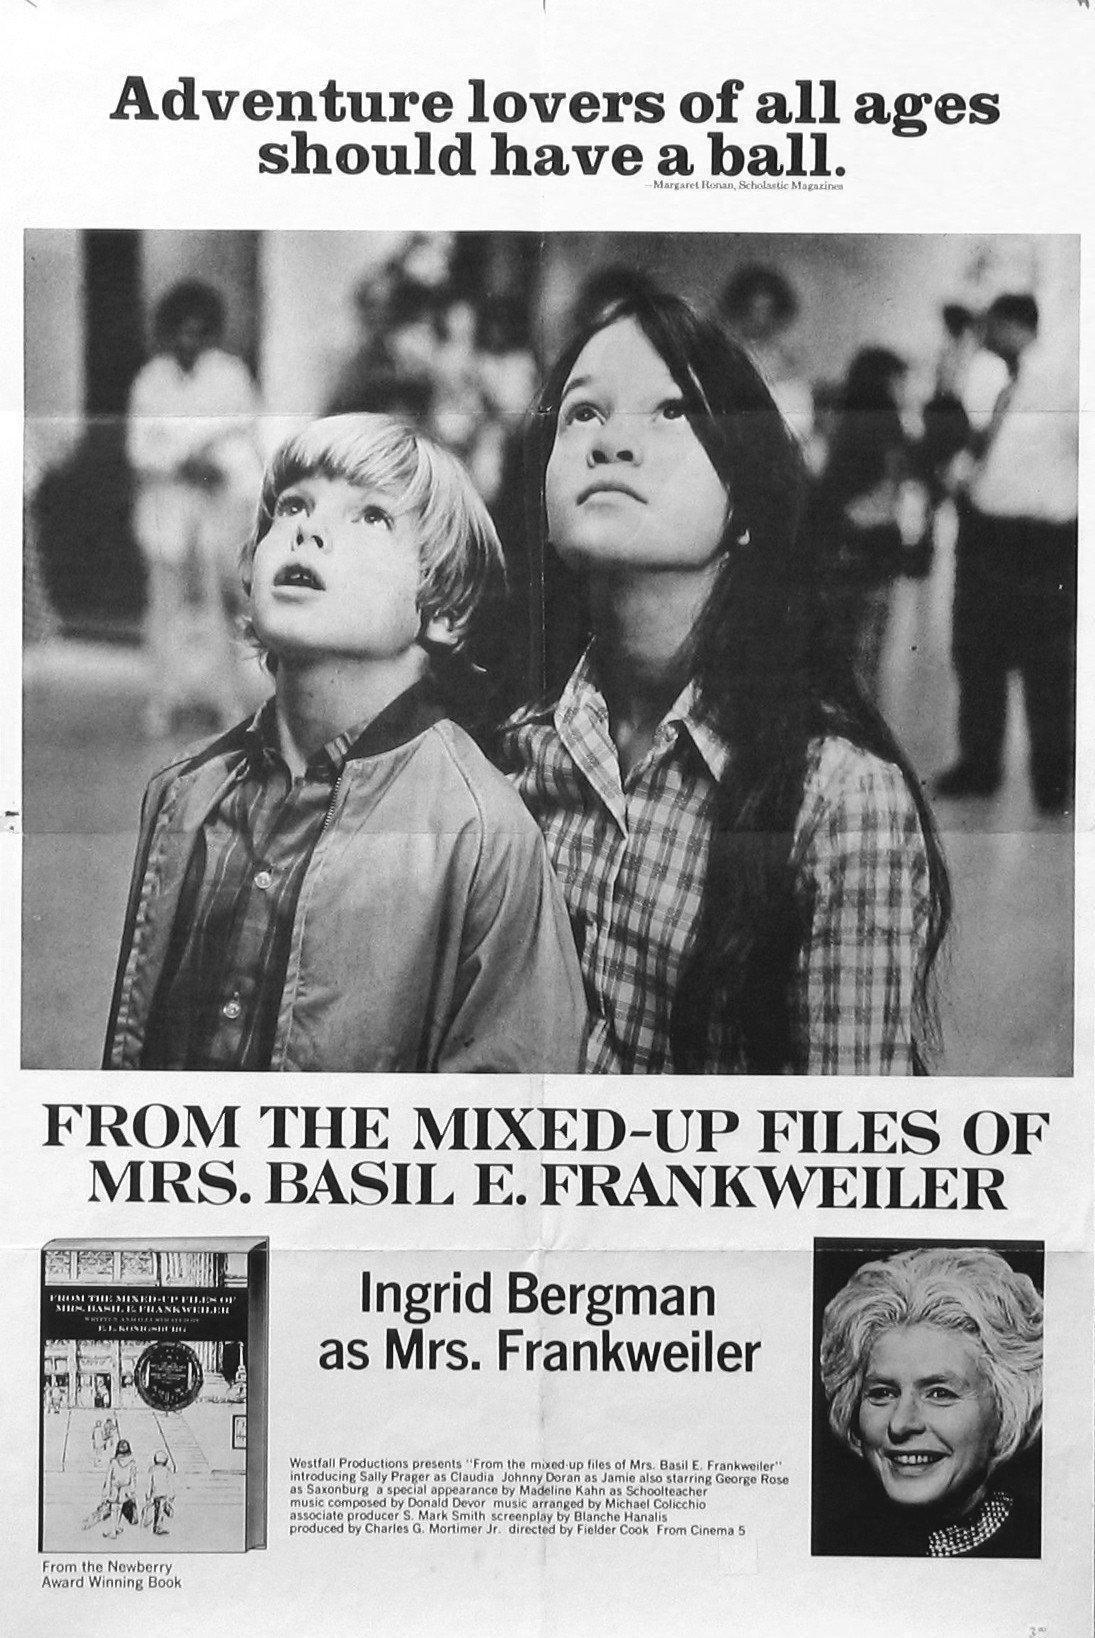 Interview with John Doran, who played Jamie Kincaid in the 1973 movie, From the Mixed-Up Files of Mrs. Basil E. Frankweiler